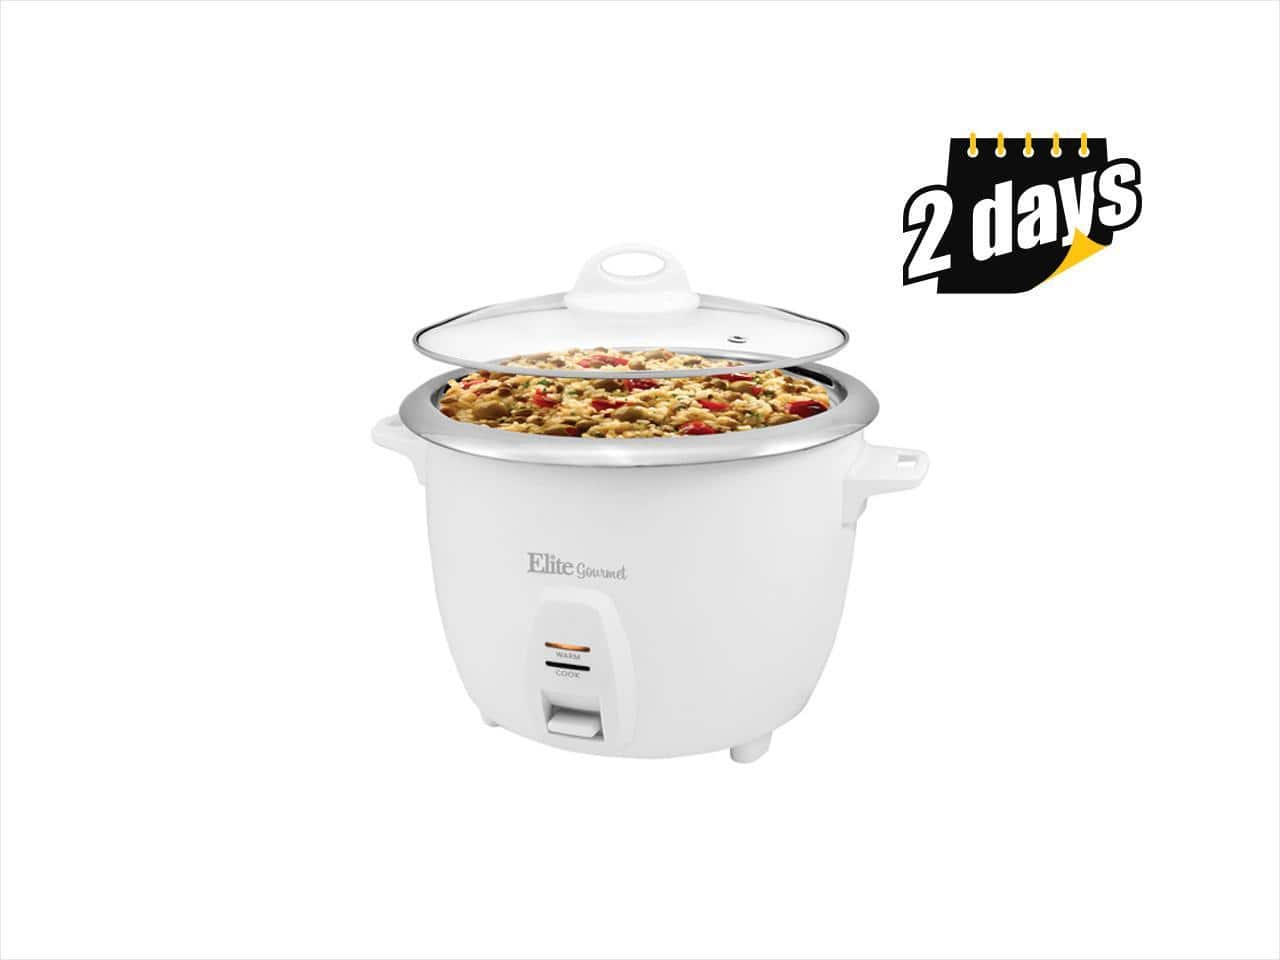 80% off - Elite - Gourmet 20-Cup Rice Cooker - White - Free shipping $9.99